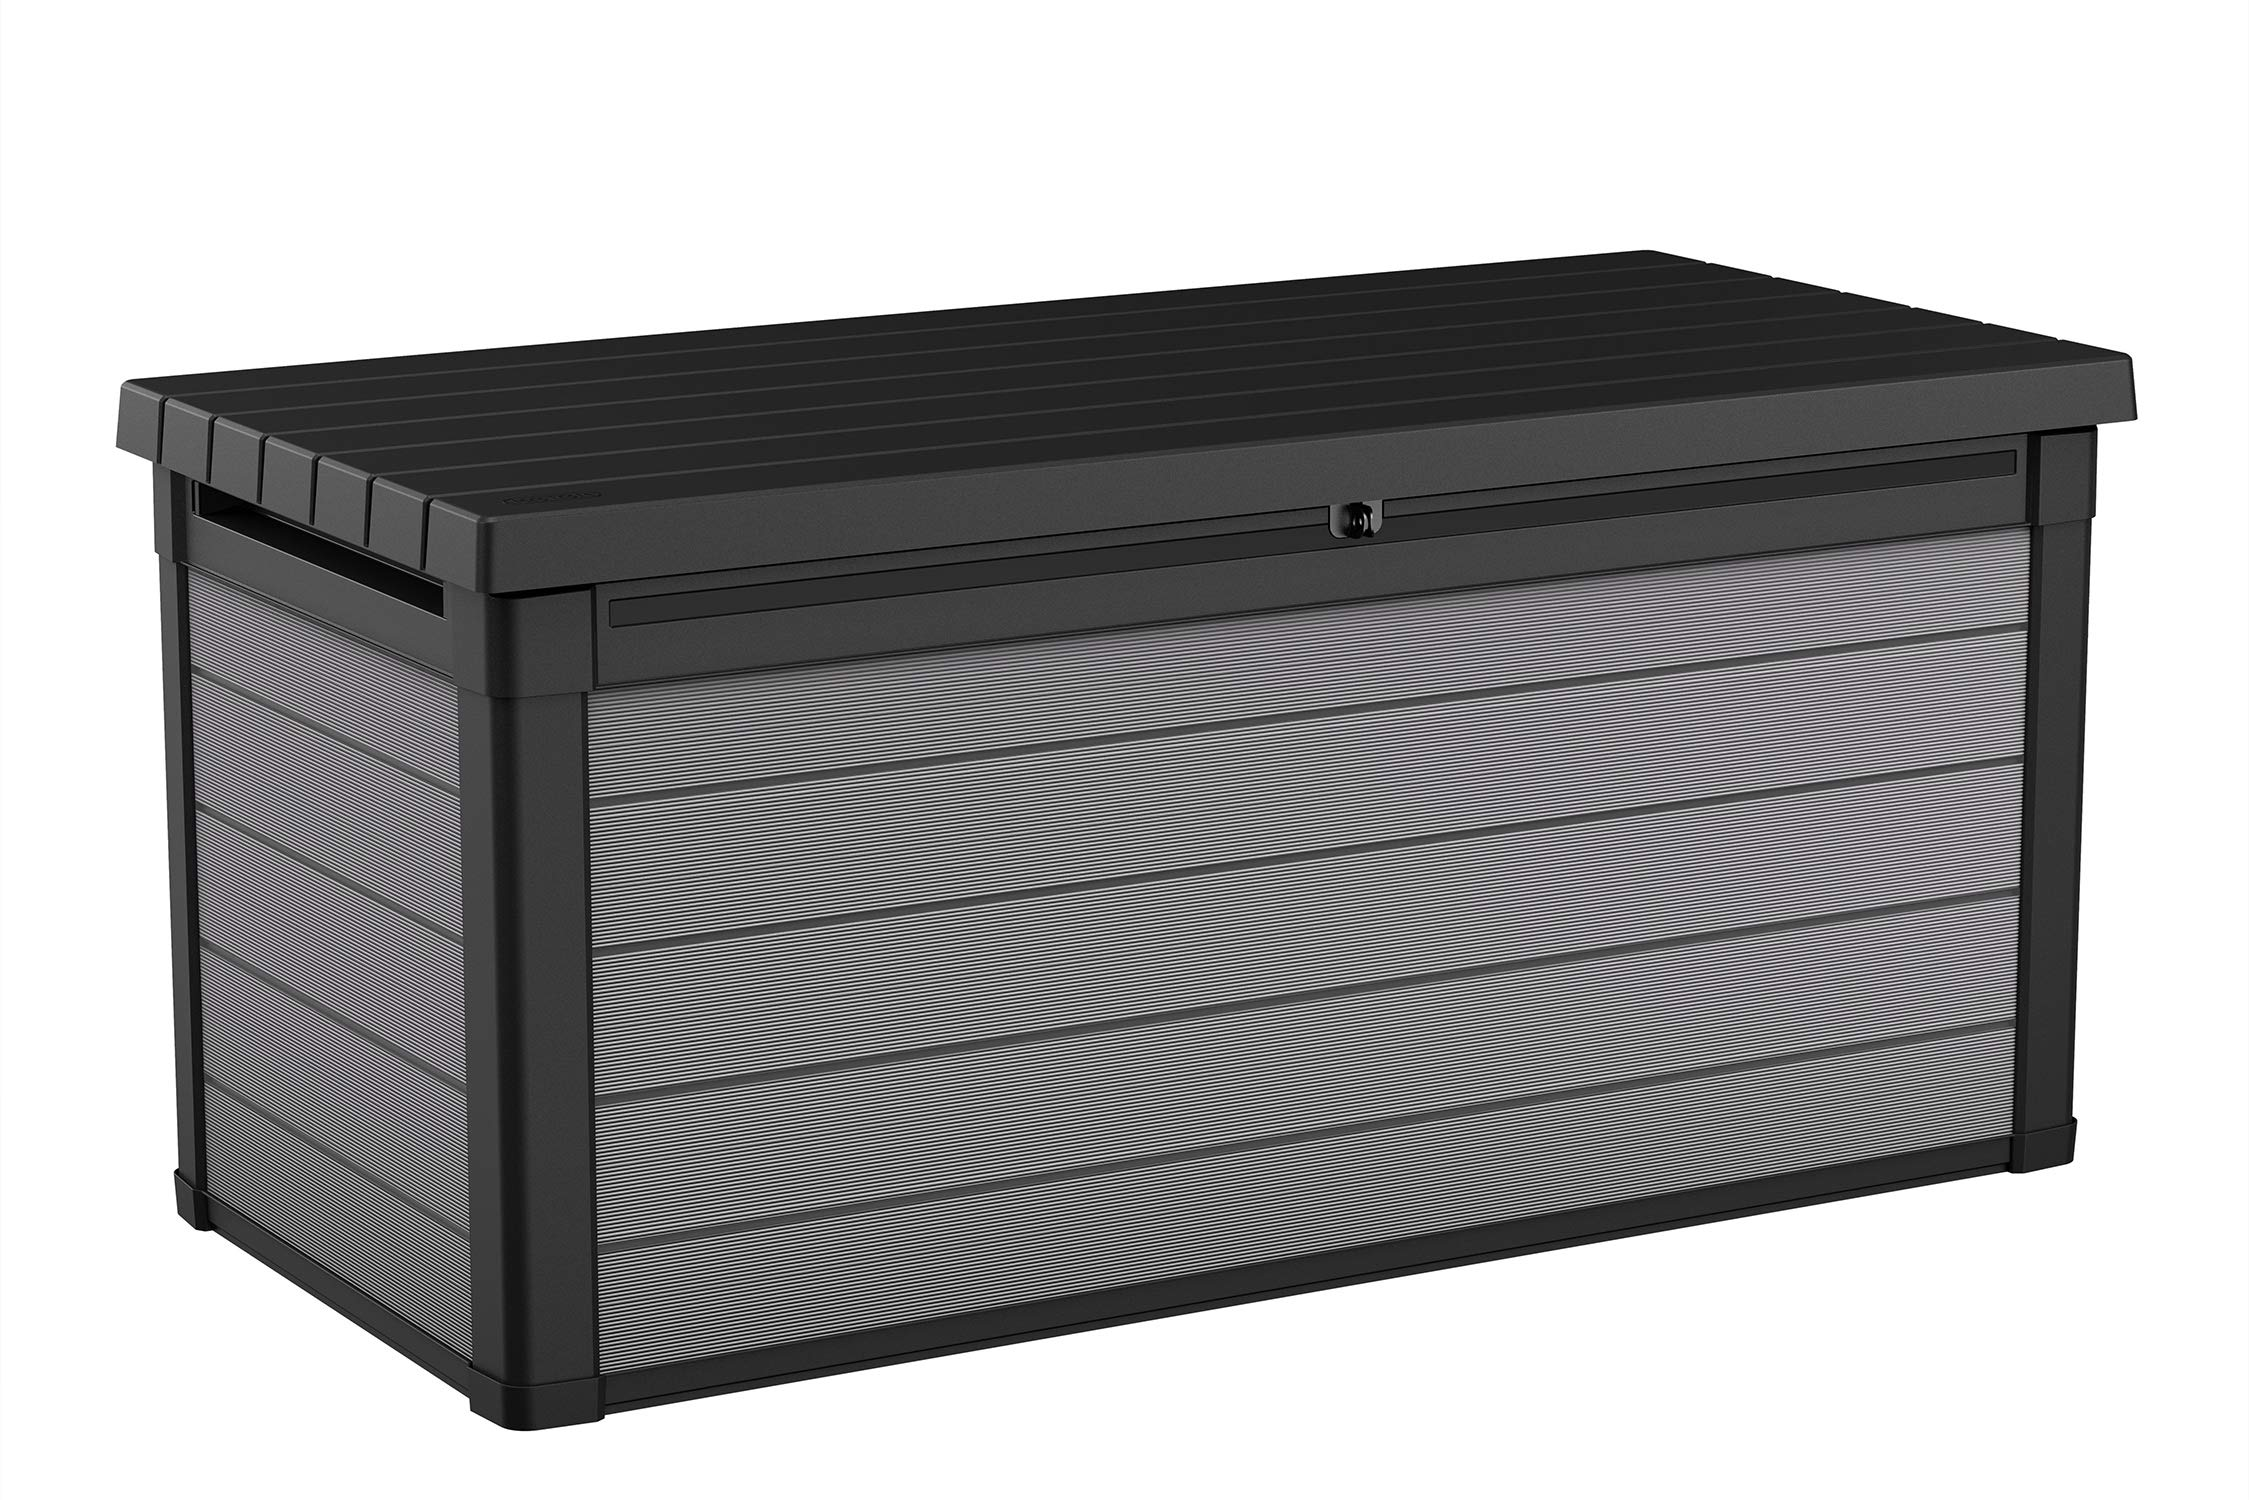 Keter 240303 Premier 150 Gallon Deck Box, Grey by Keter